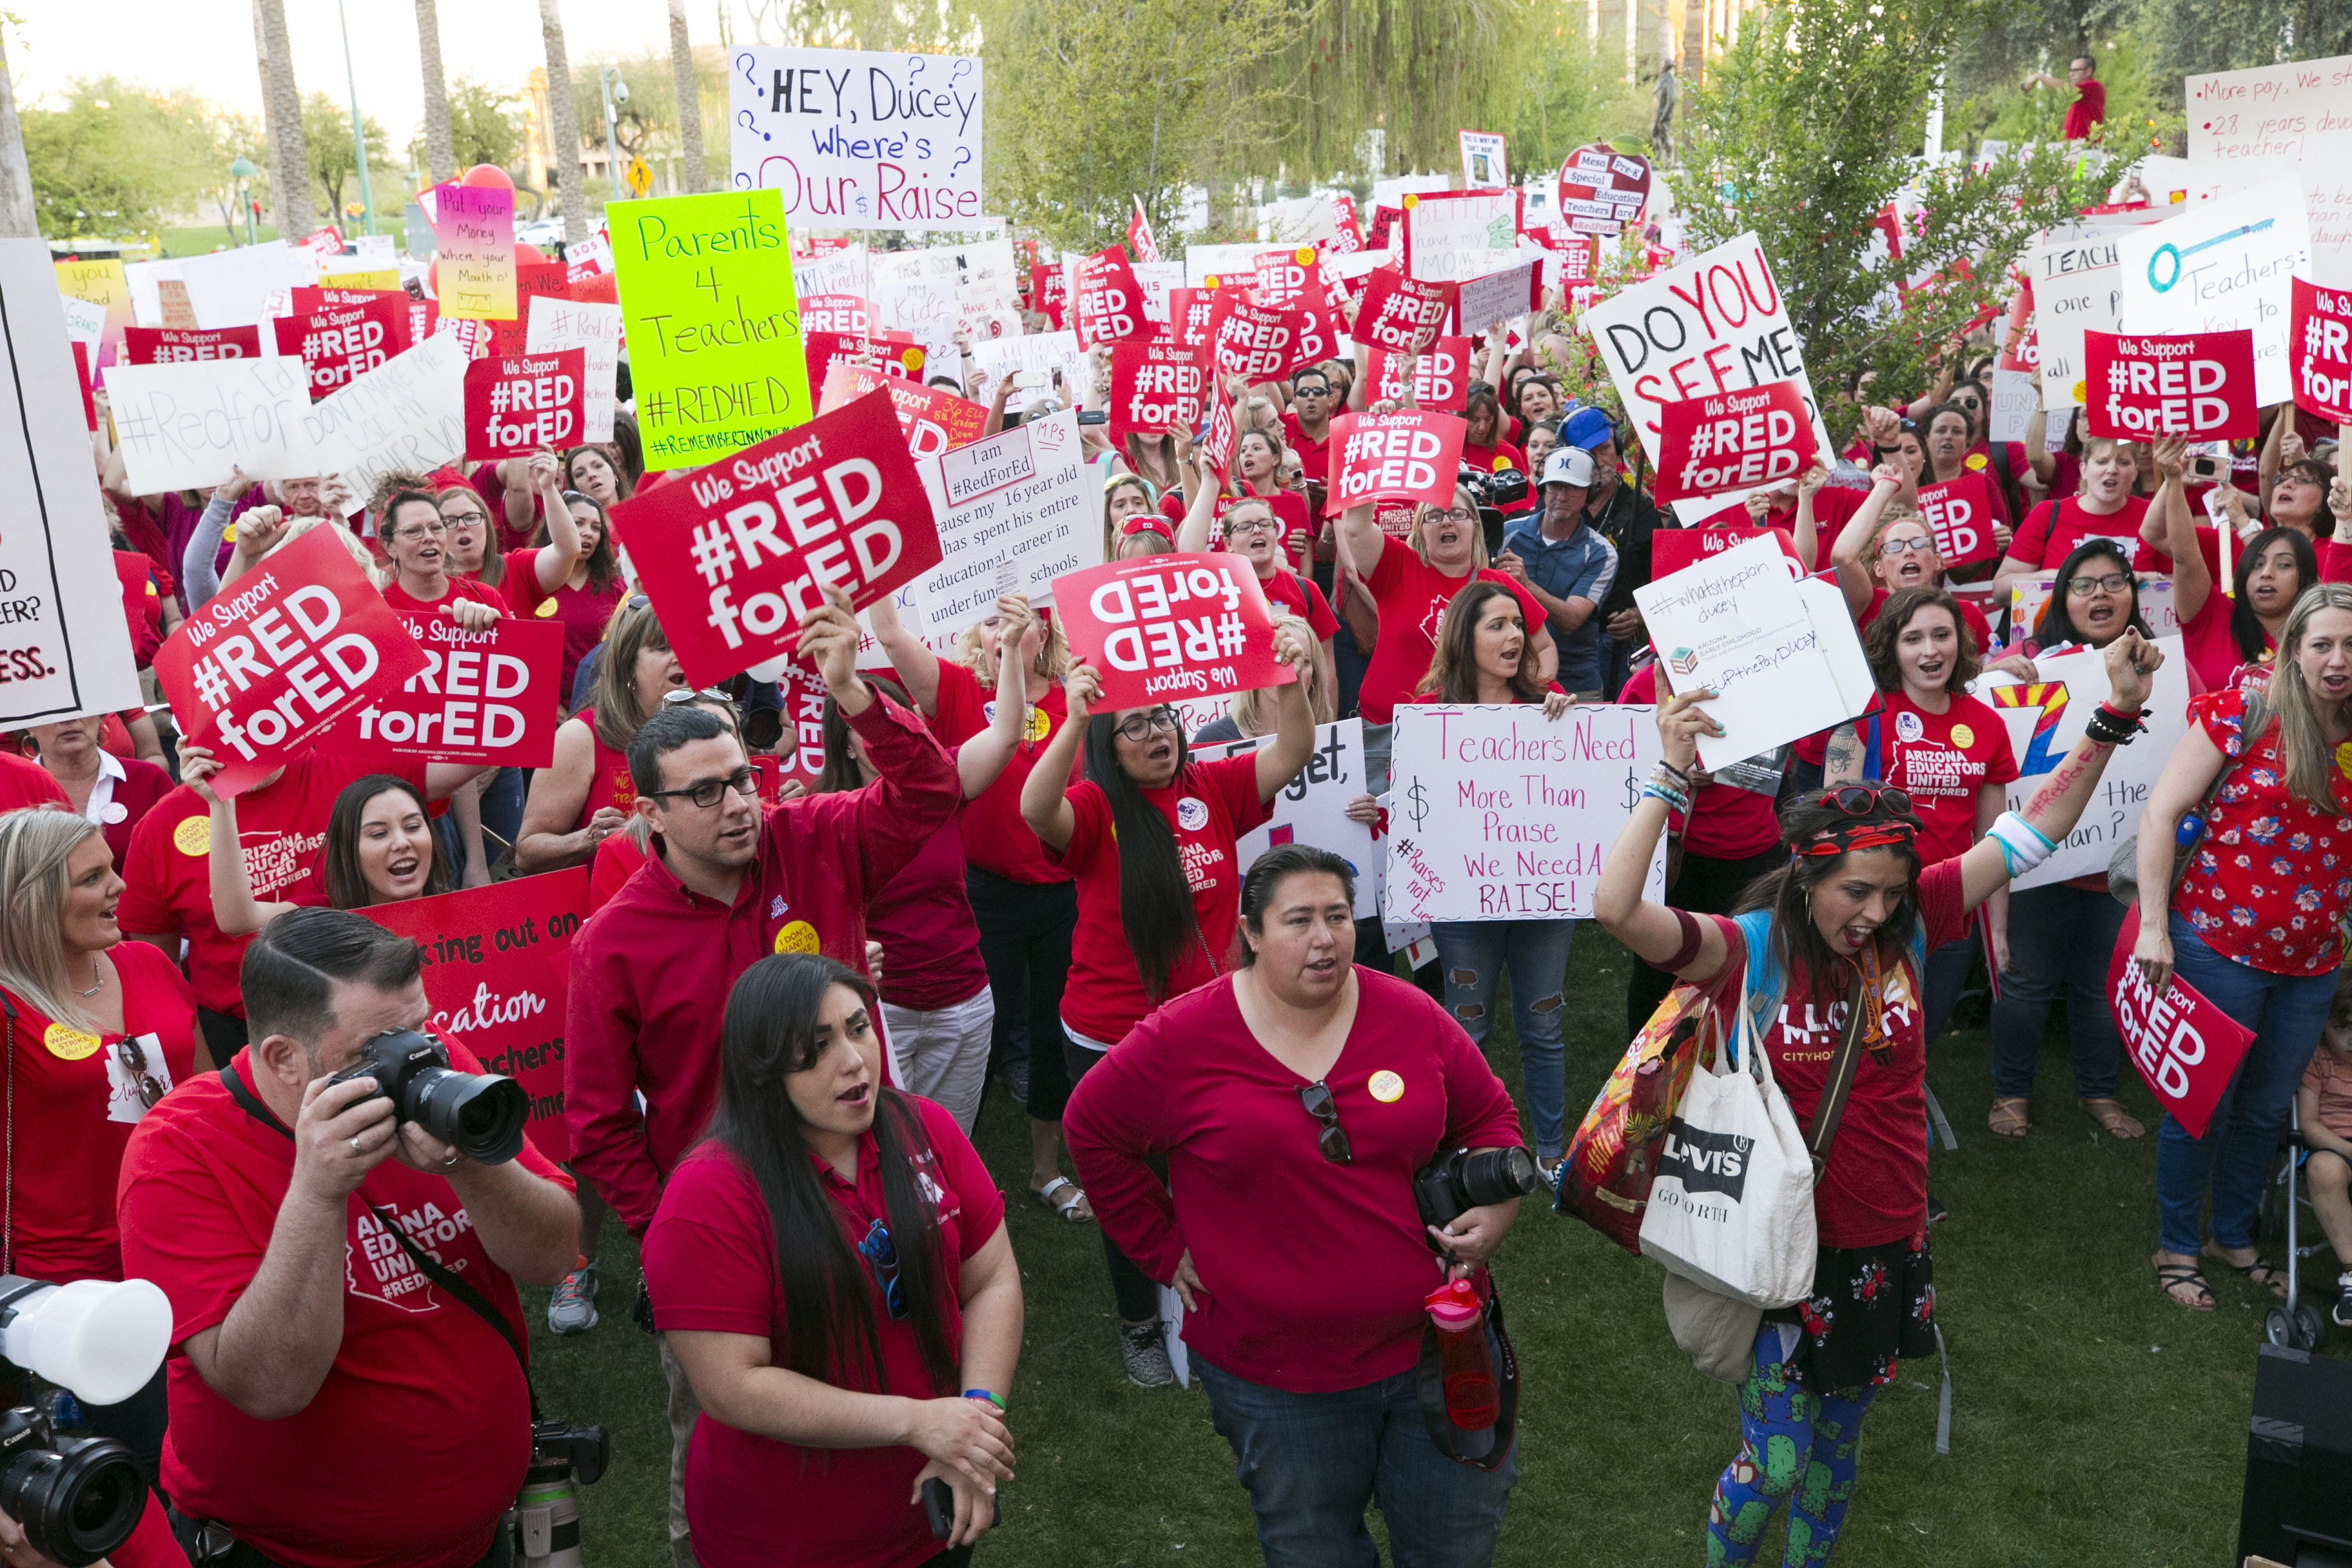 Results of #RedForEd teacher walkout vote to be announced Thursday | Arizona Central